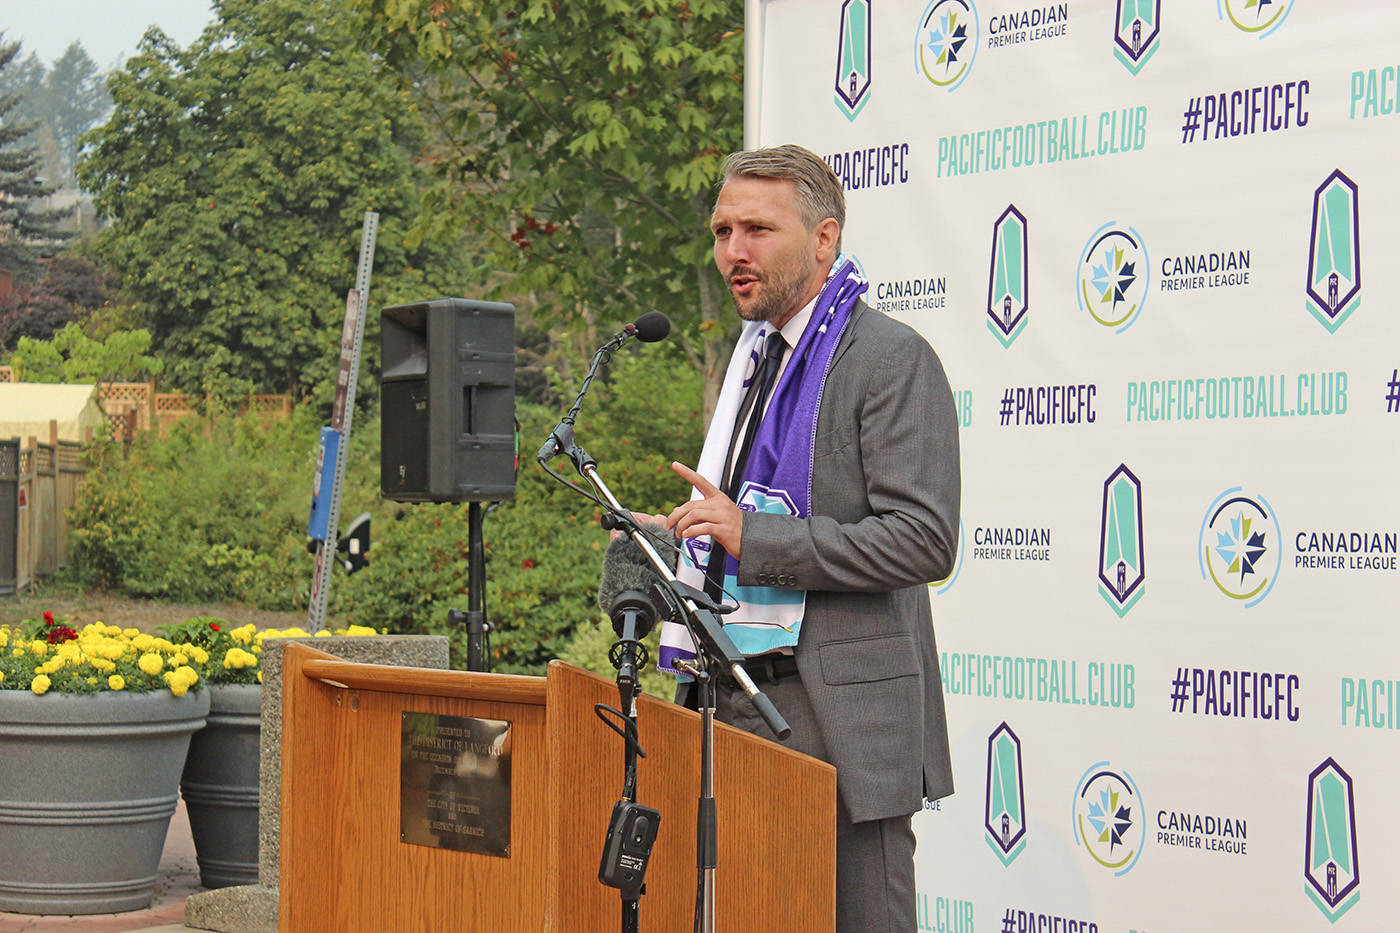 Michael Silberbauer was named the first head coach of the Pacific FC during a press conference at the City Center Park Pond in Langford. (Black Press Media file photo)